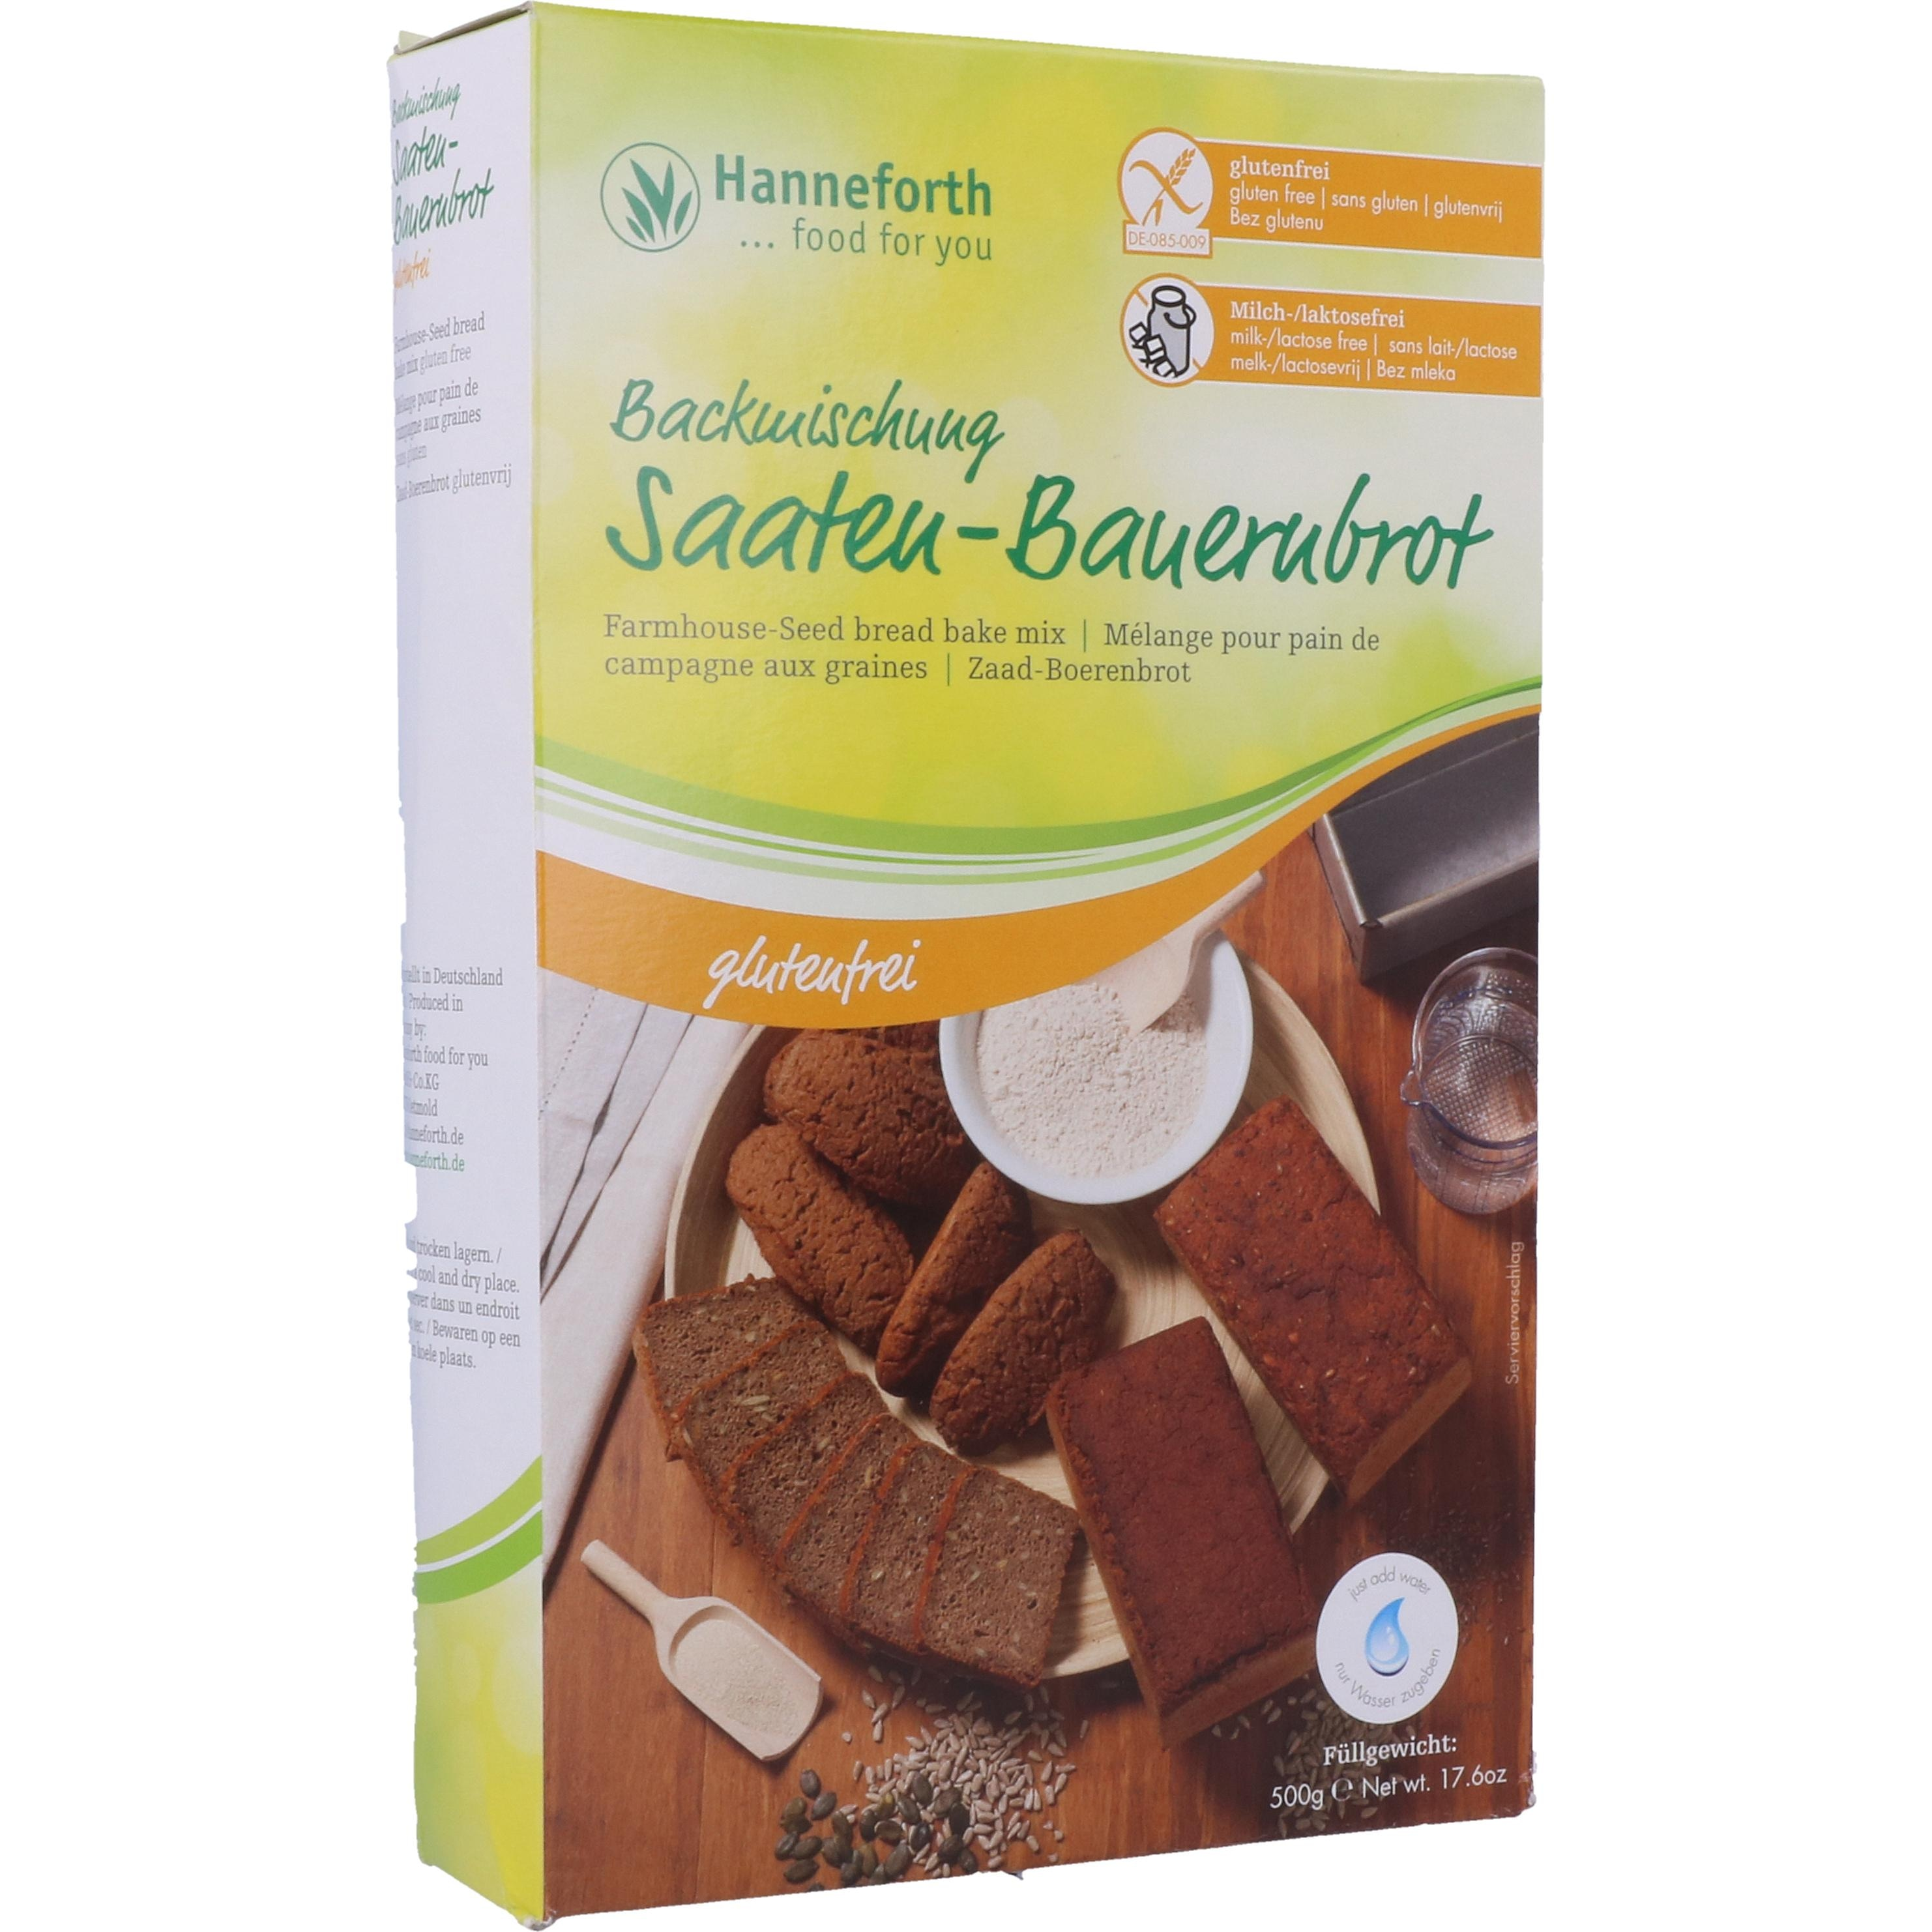 Hanneforth, food for you Backmischung für Saaten-Bauernbrot 500g